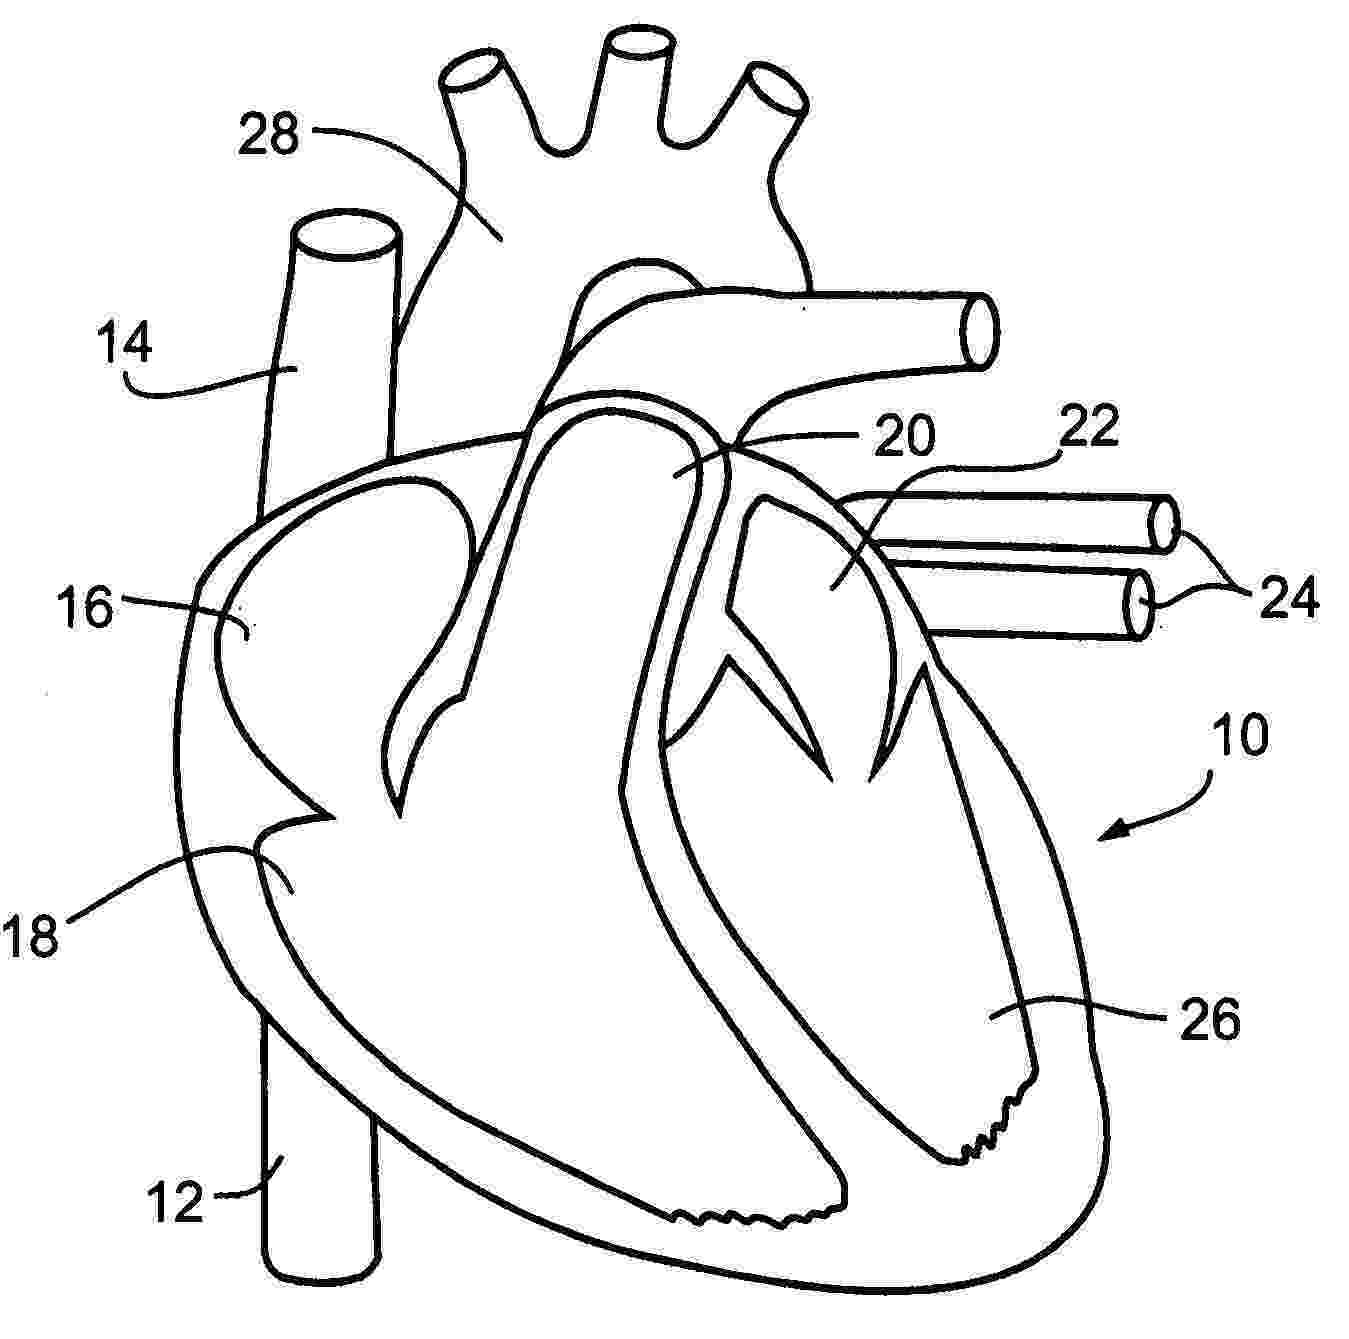 coloring pages circulatory system veins and arteries coloring page study arteries veins circulatory pages coloring system